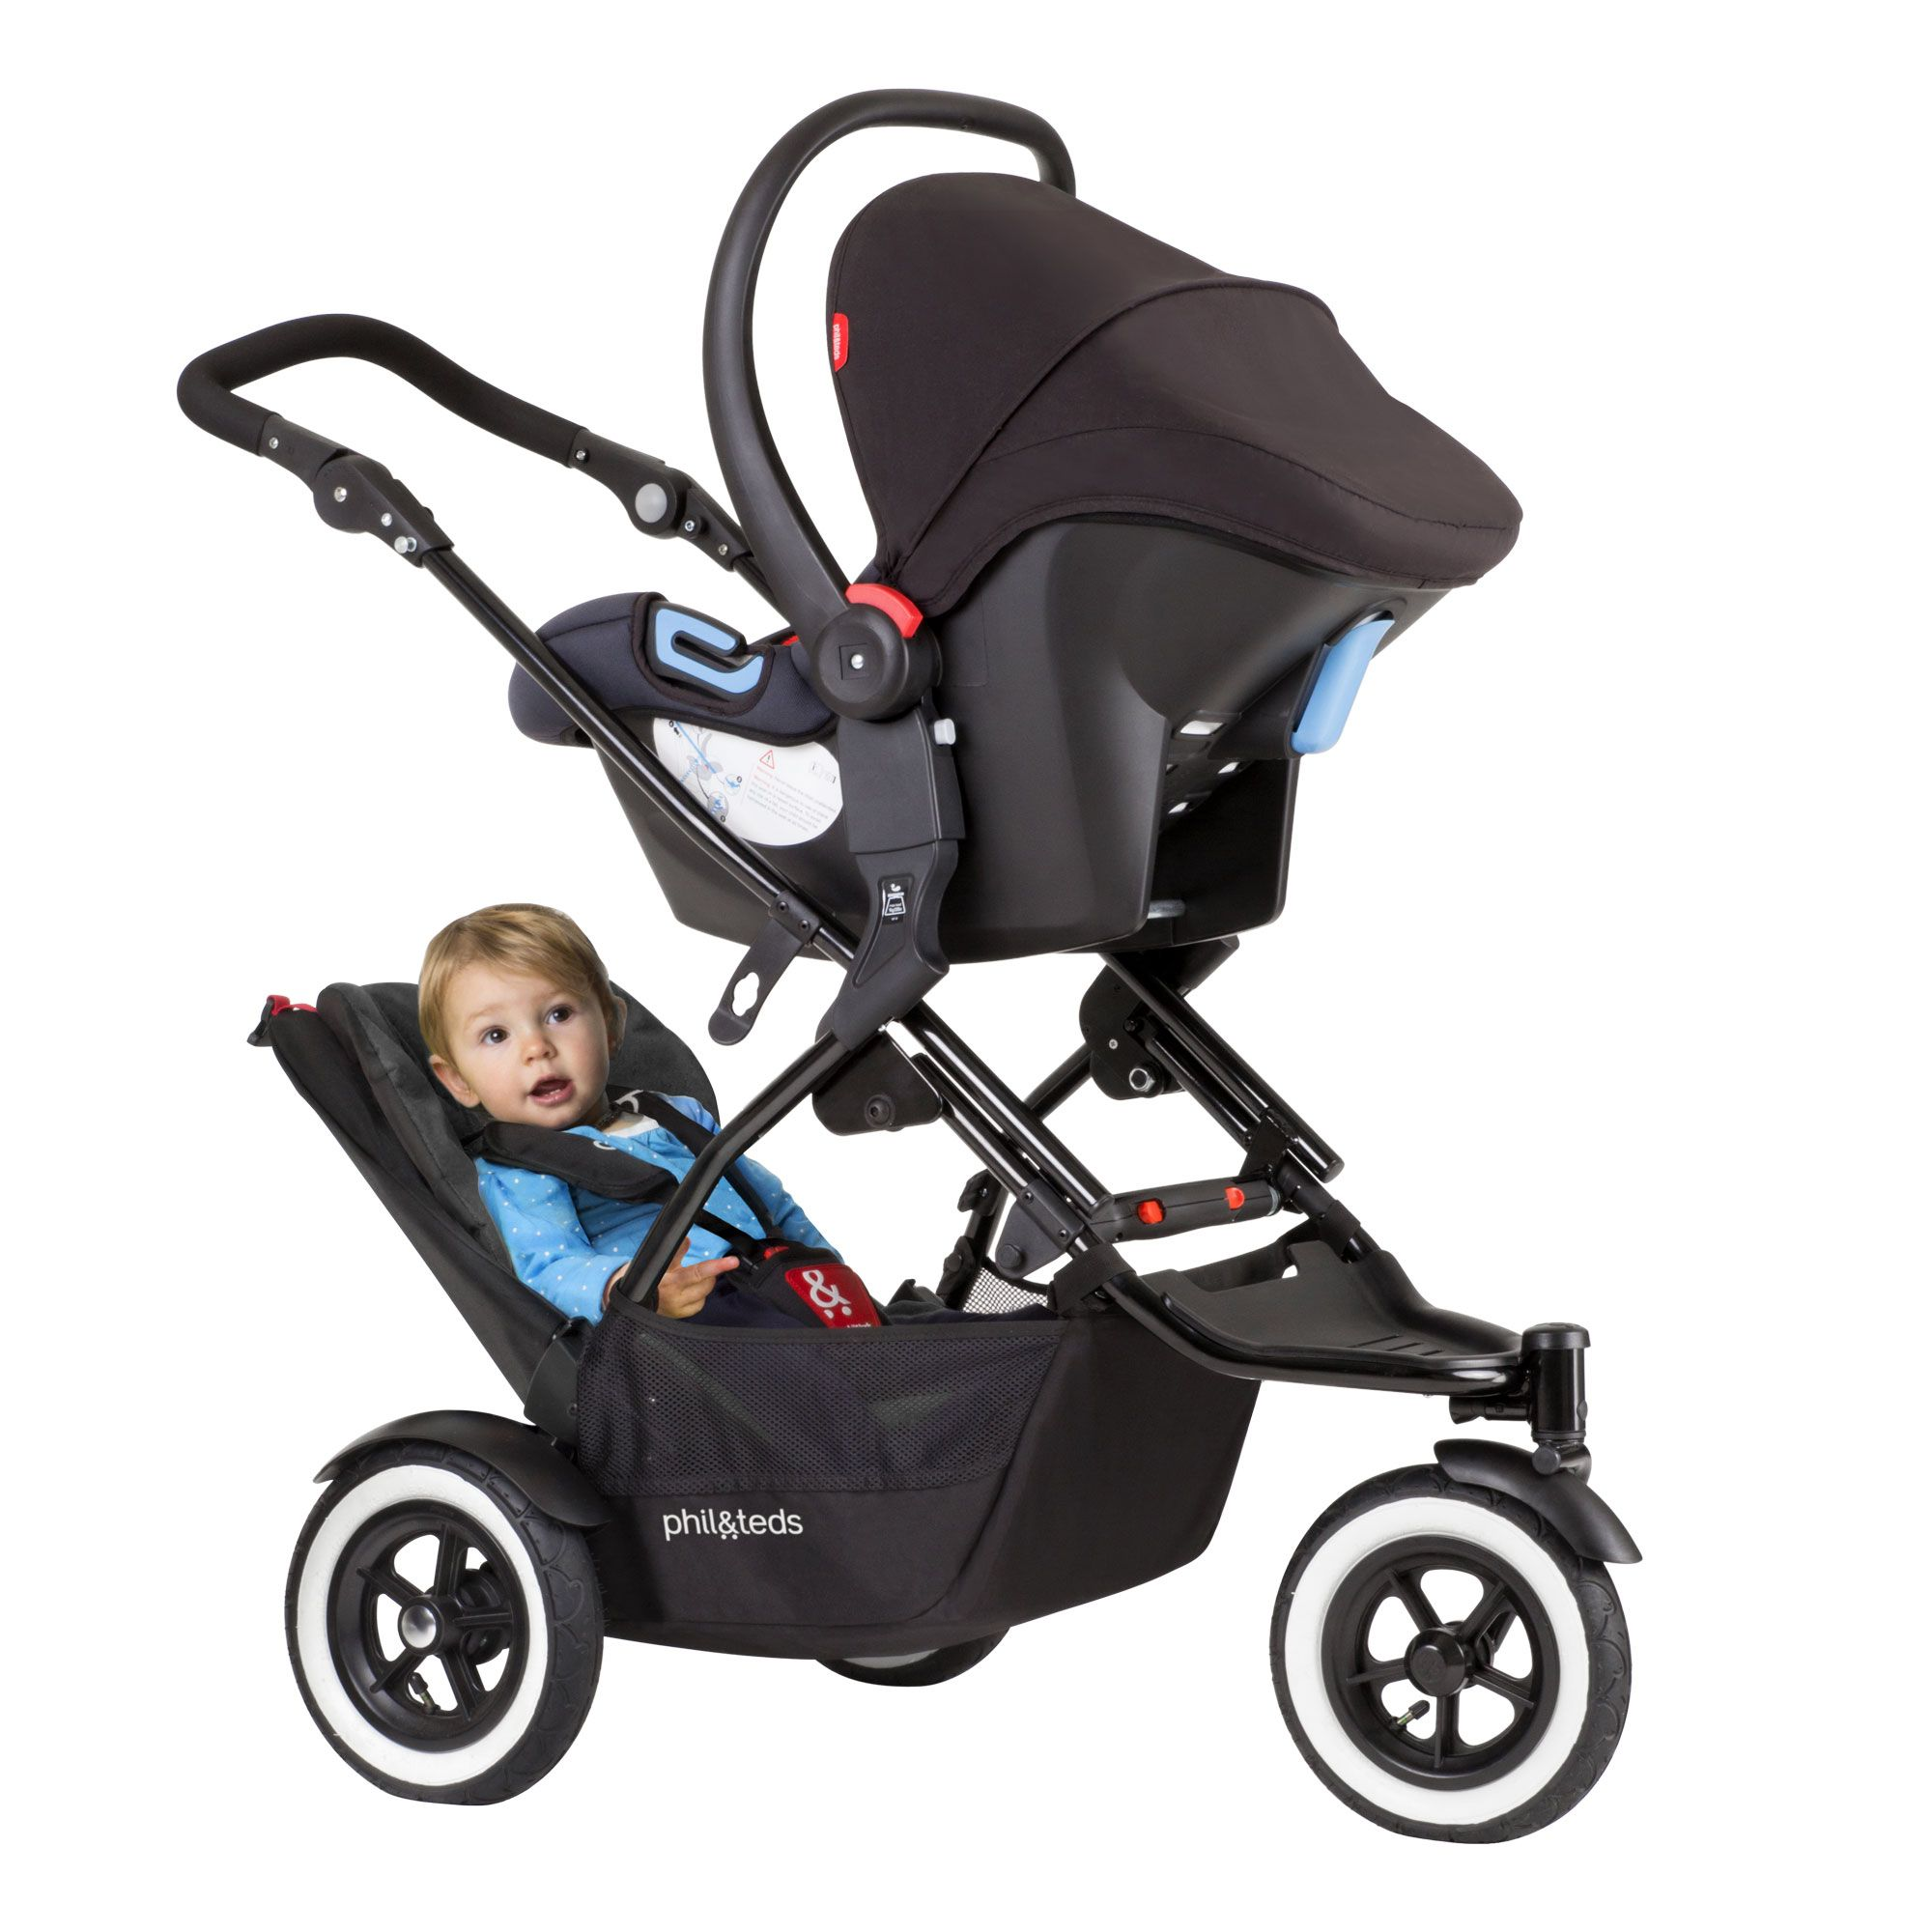 phil&teds DOT stroller for infant and toddler. dot is the